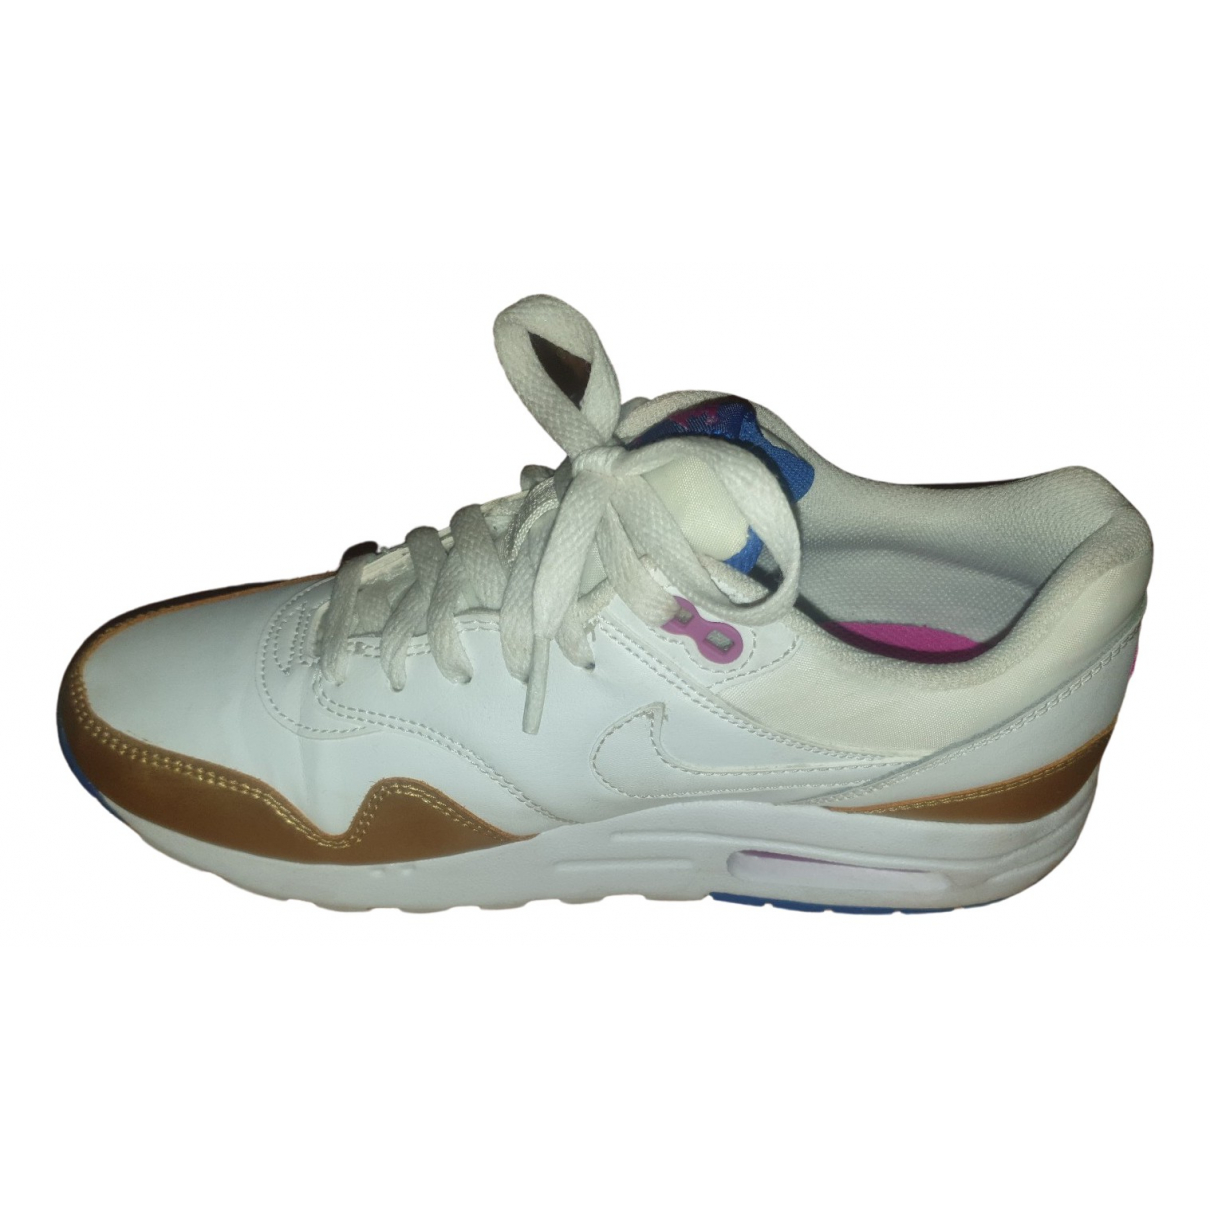 Nike Air Max  White Leather Trainers for Women 38.5 EU